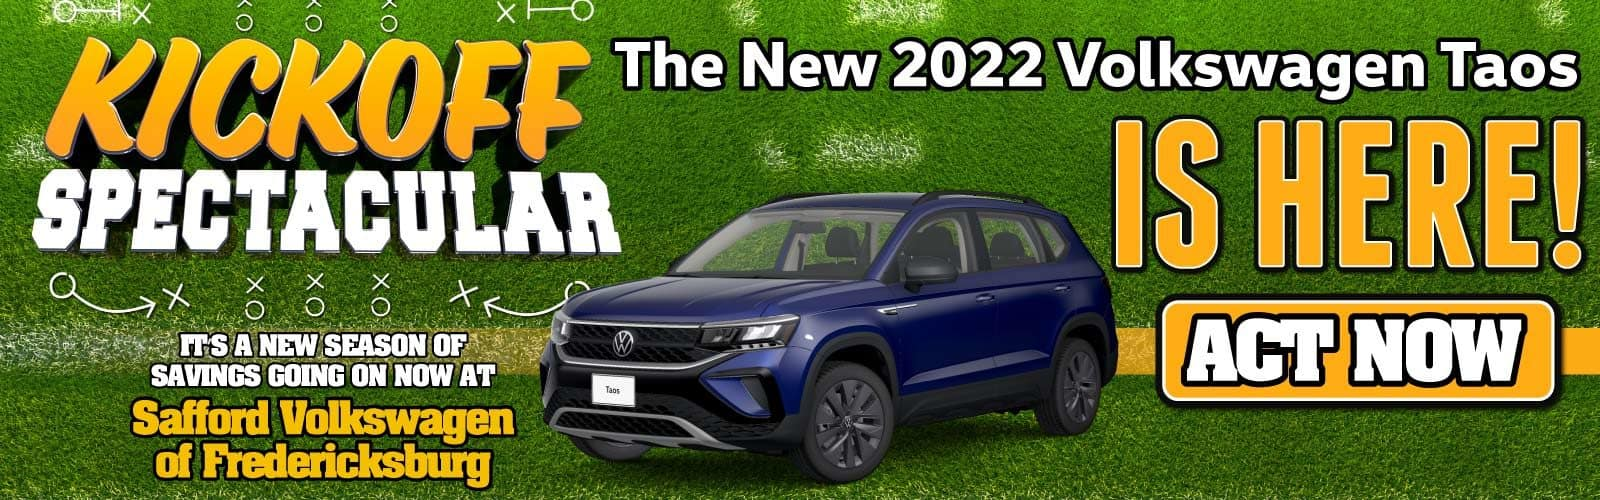 The New 2022 Volkswagen Taos is HERE!